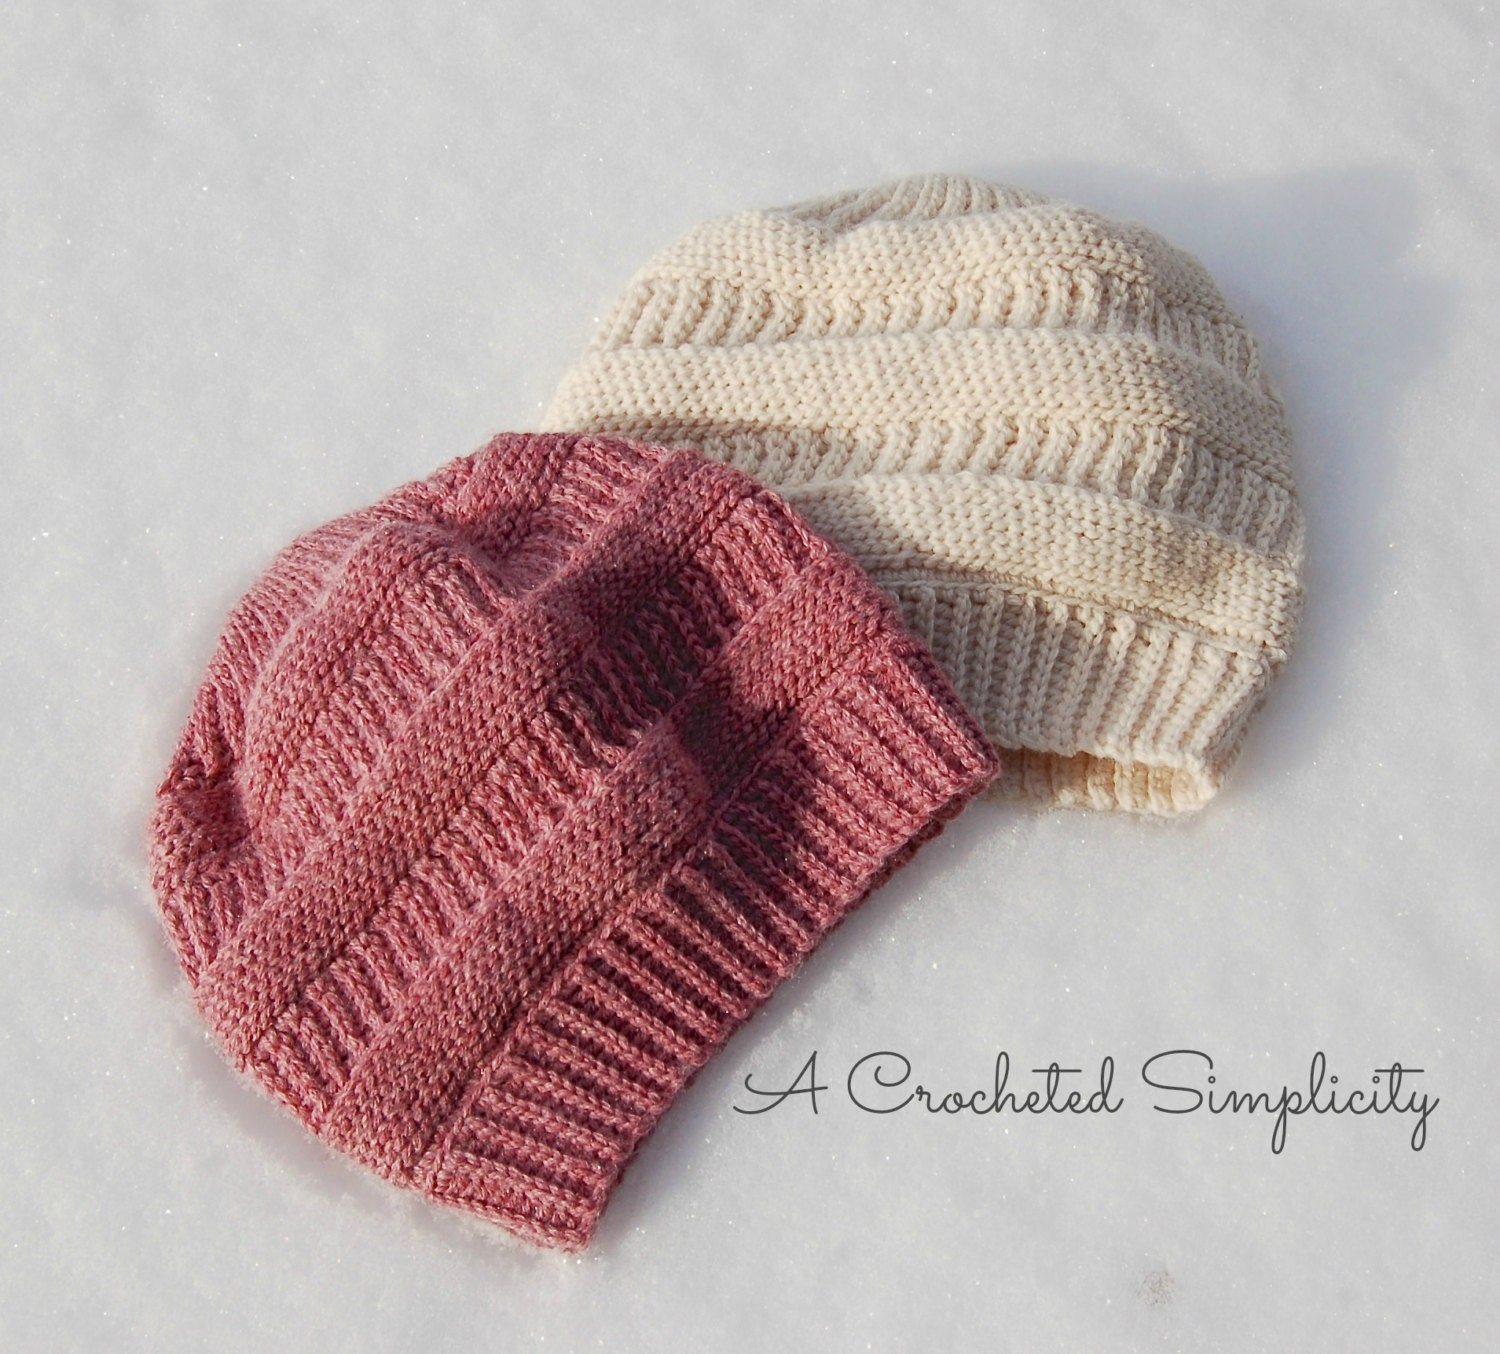 Crochet Pattern: Purl Illusions Slouch Sizes